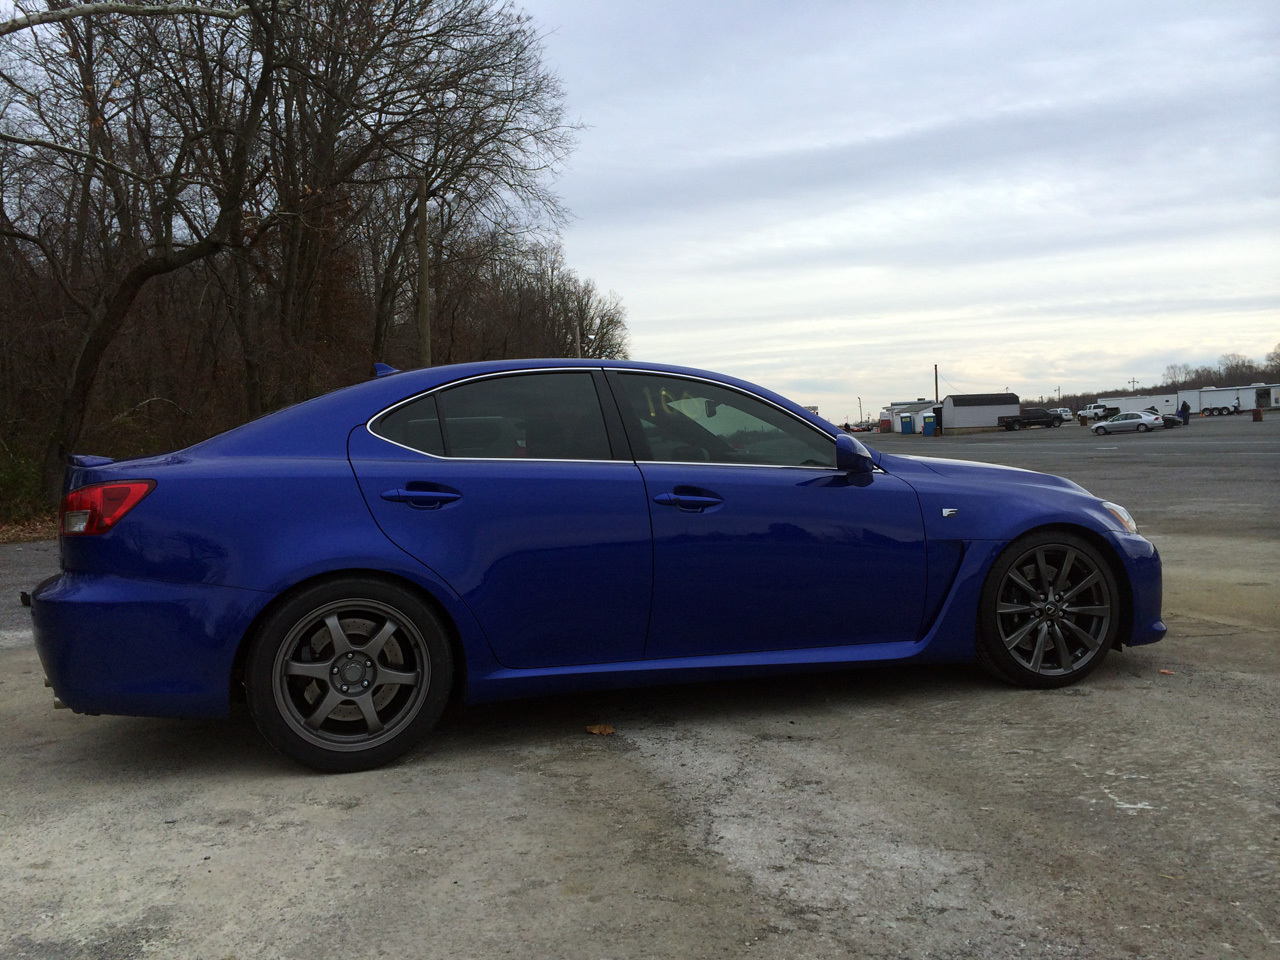 2008 lexus is f 1 4 mile drag racing timeslip specs 0 60. Black Bedroom Furniture Sets. Home Design Ideas